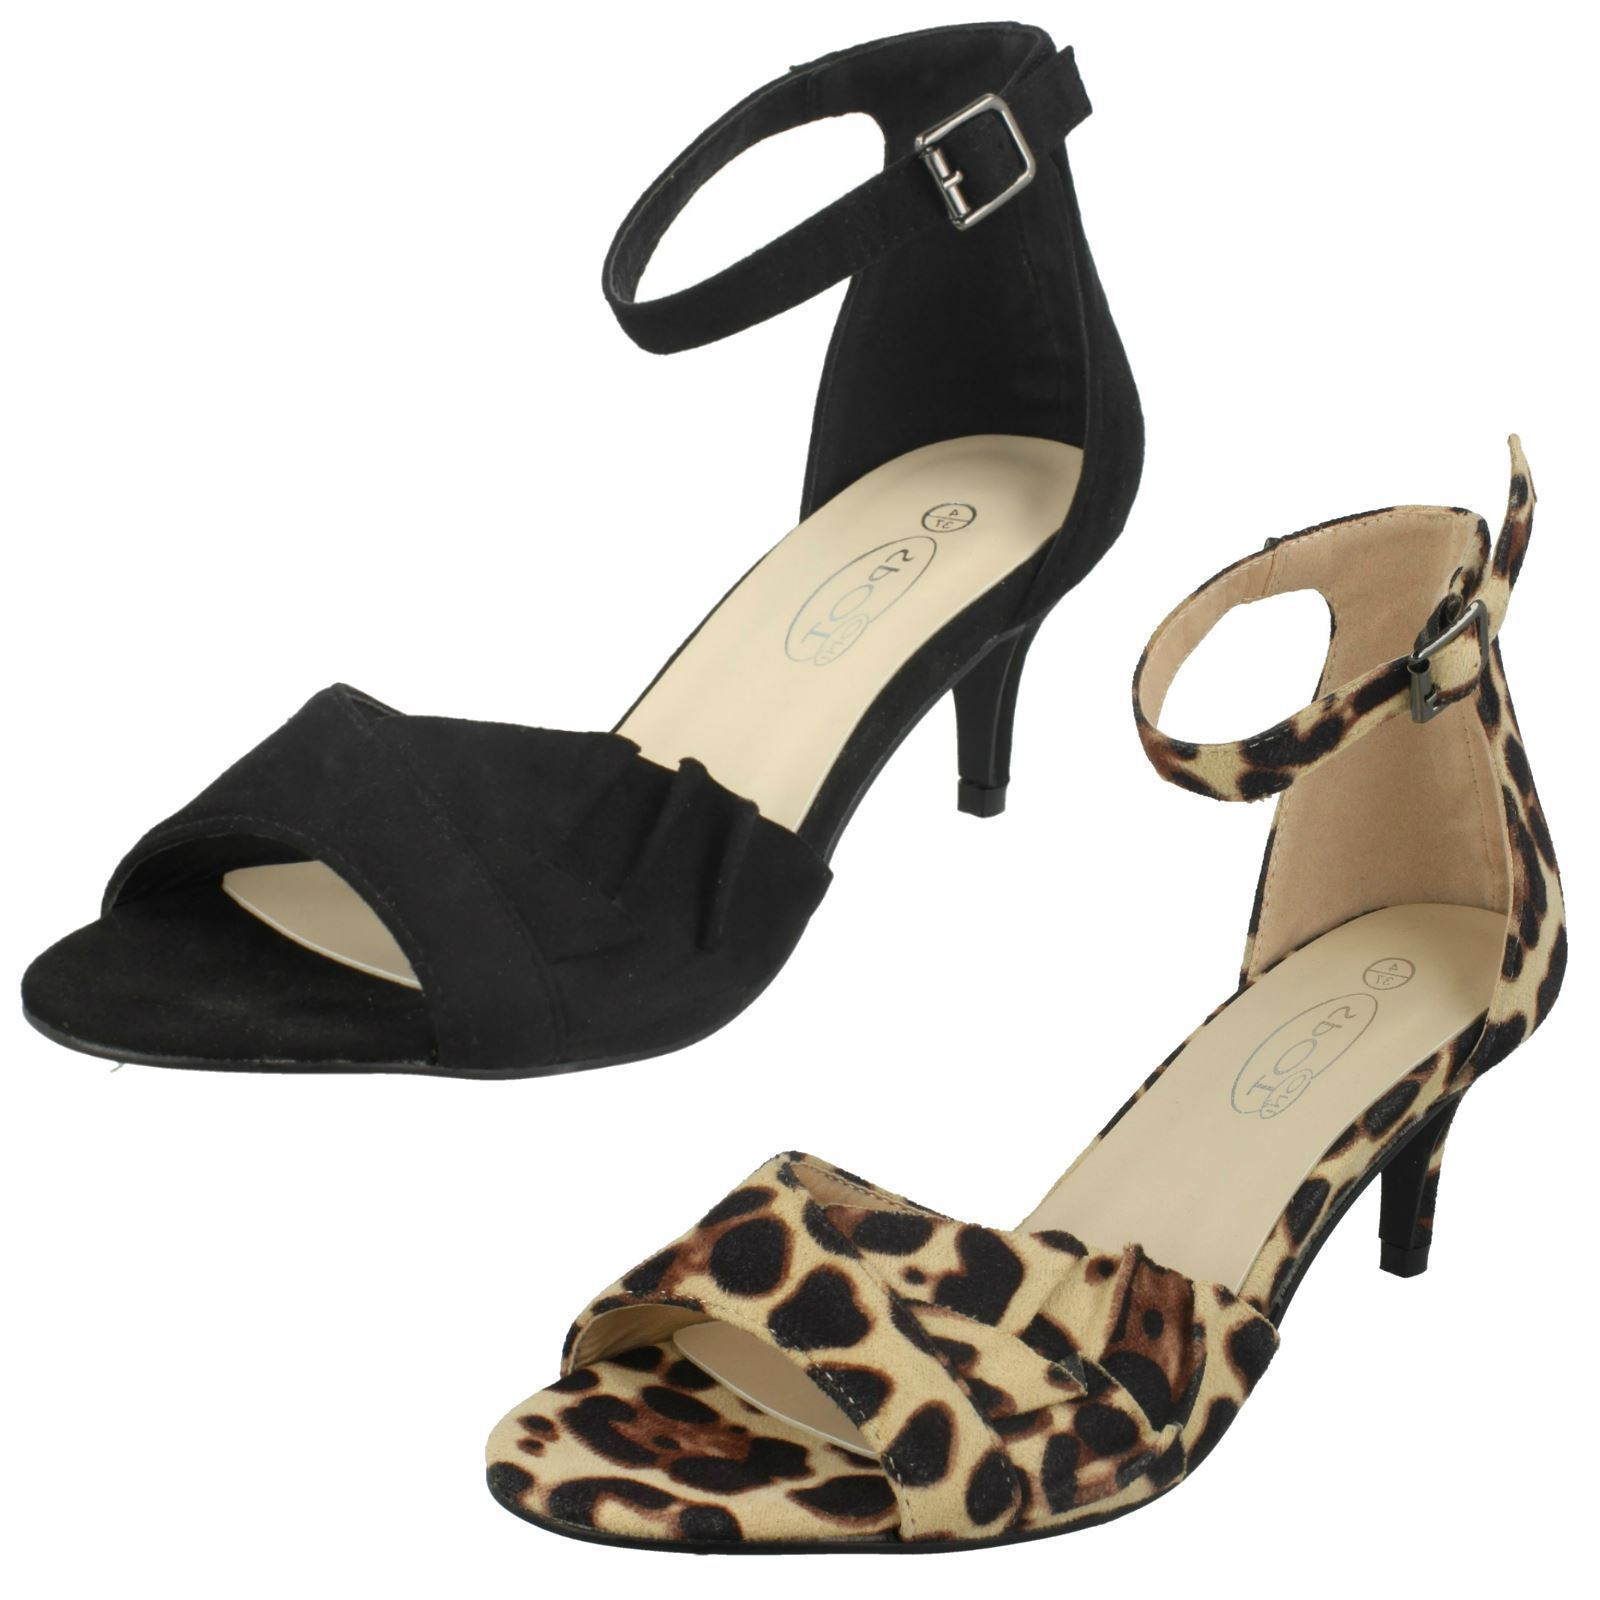 Ladies F1R0847 Peep Toe Court shoes By Spot On Retail Price